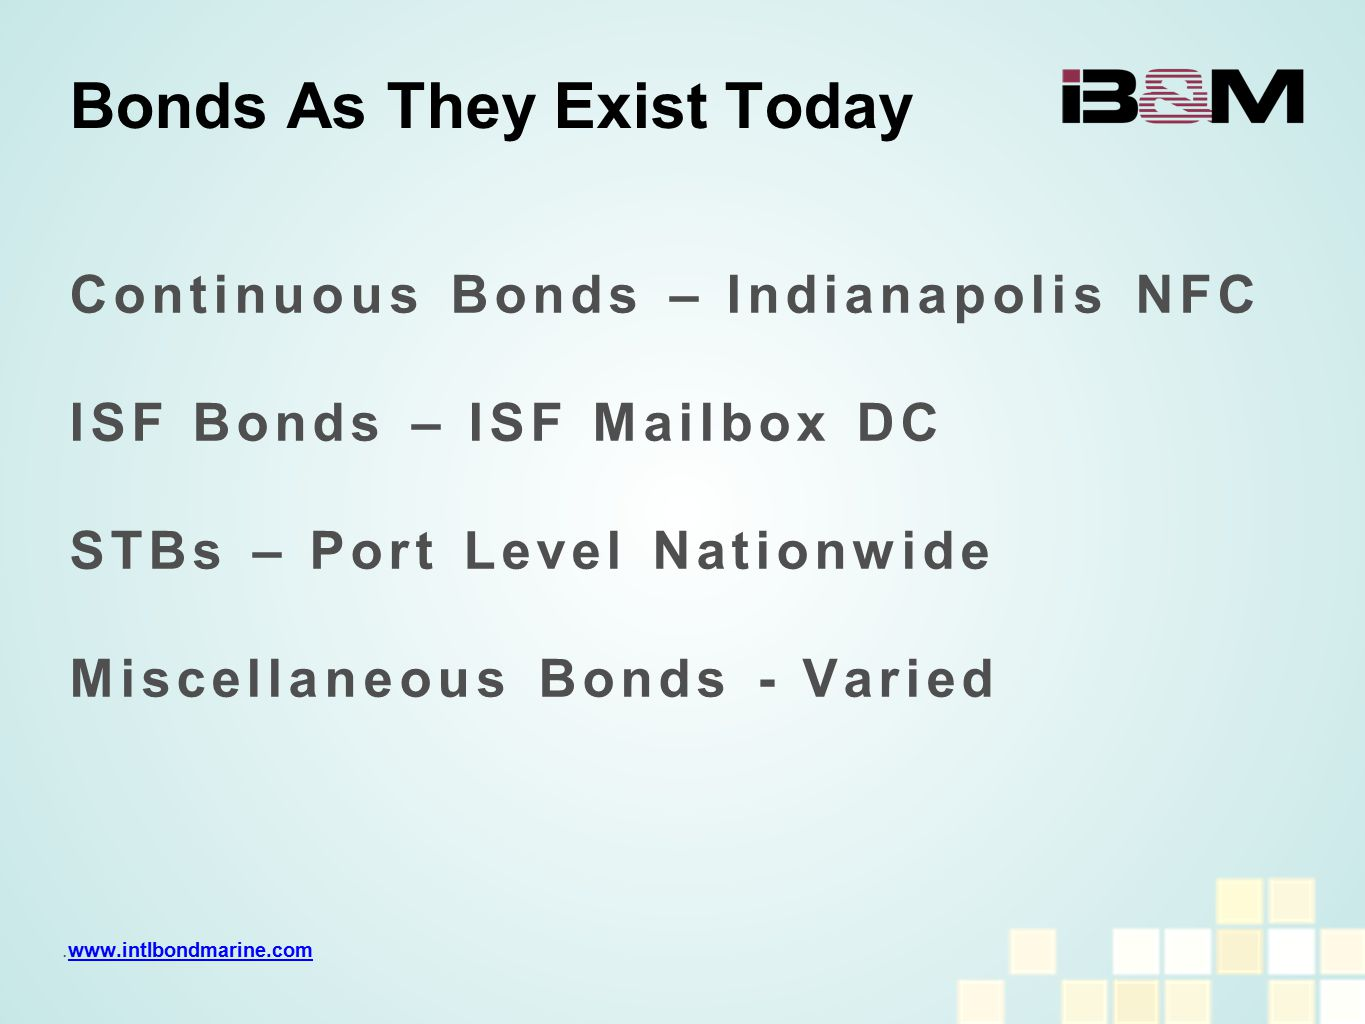 Continuous Bonds – Indianapolis NFC ISF Bonds – ISF Mailbox DC STBs – Port Level Nationwide Miscellaneous Bonds - Varied Bonds As They Exist Today.www